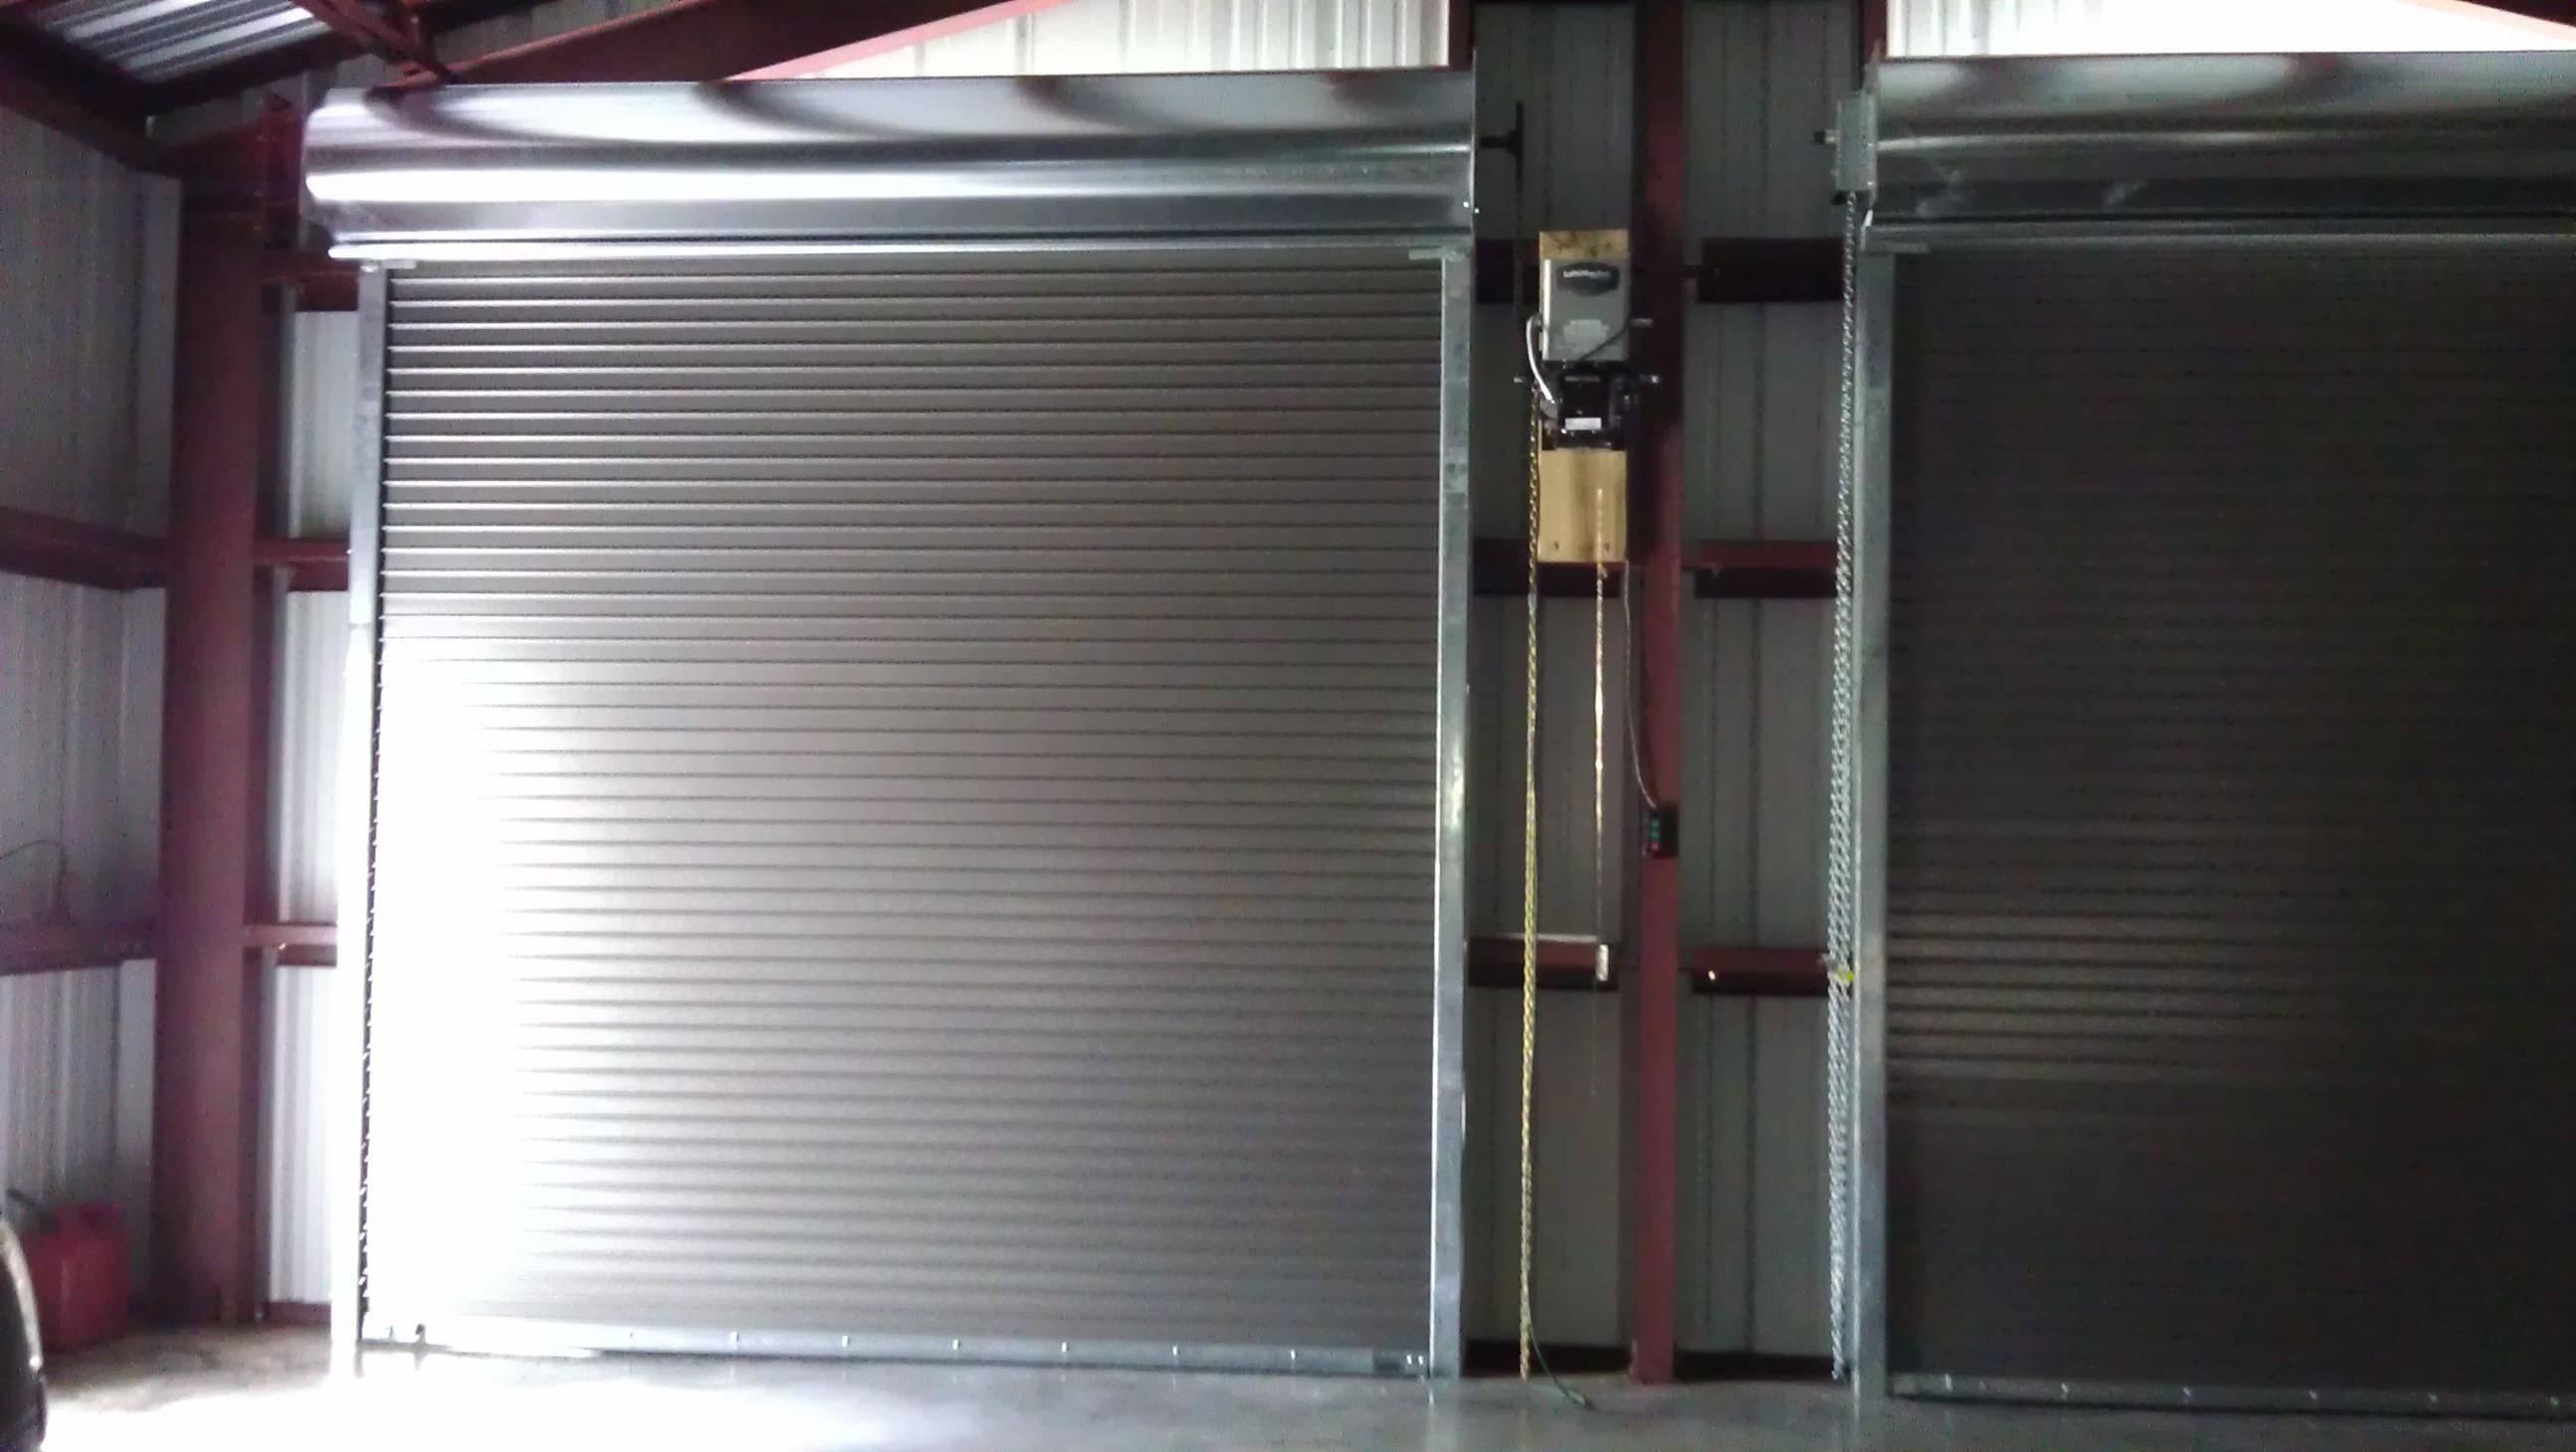 Stainless Steel Roll Up Garage Door Installation Commercial Garage Doors Door Repair